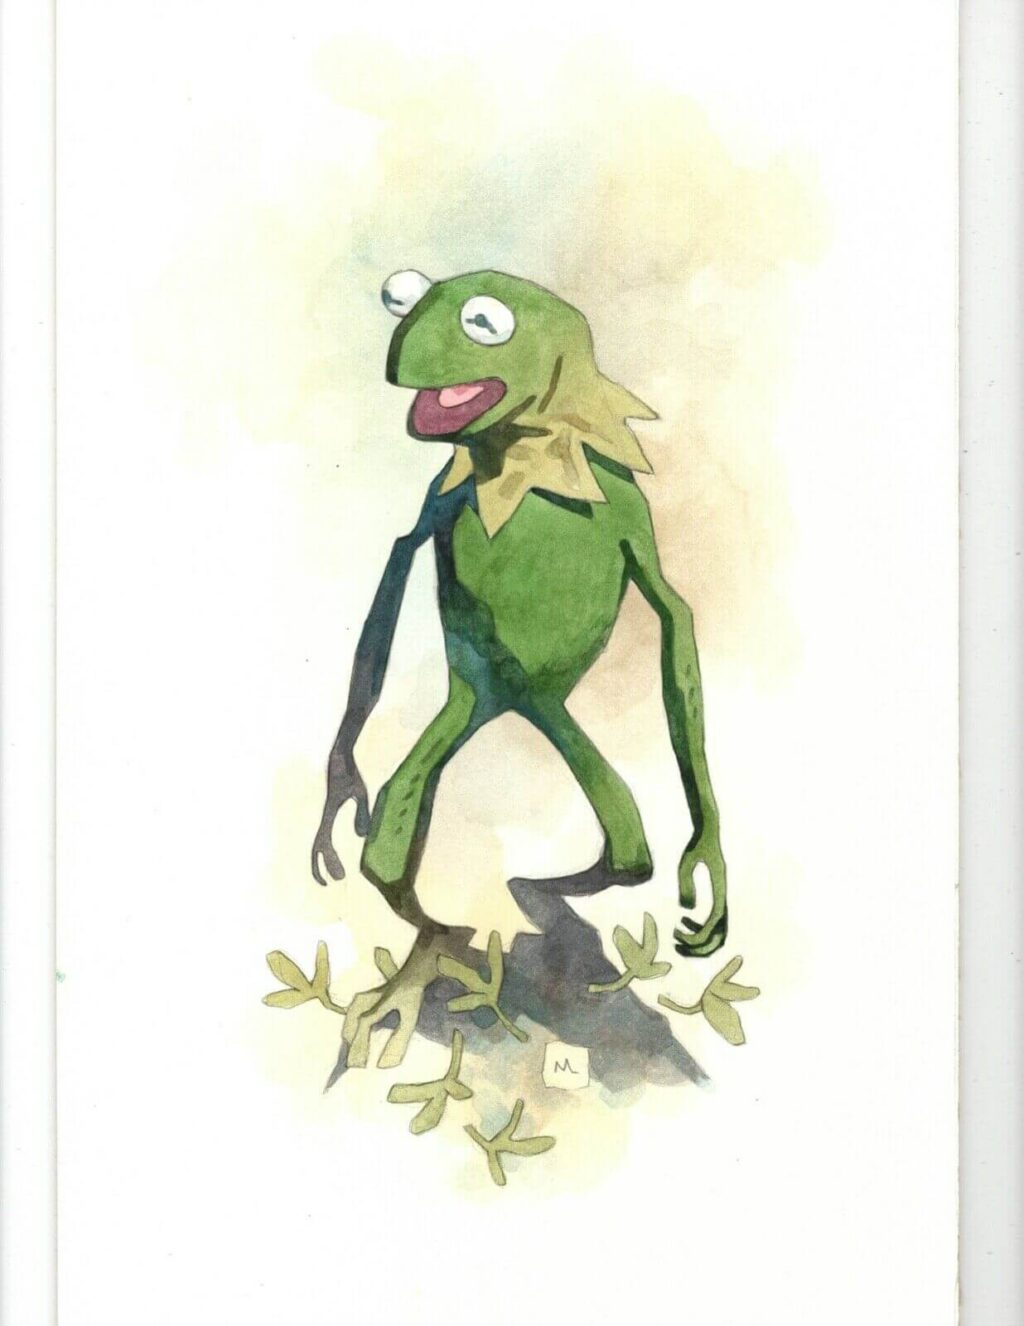 milke mignola kermit 1 1024x1326 - Mike Mignola Shares Incredible Quarantine Artwork Of All Your Favourite Characters